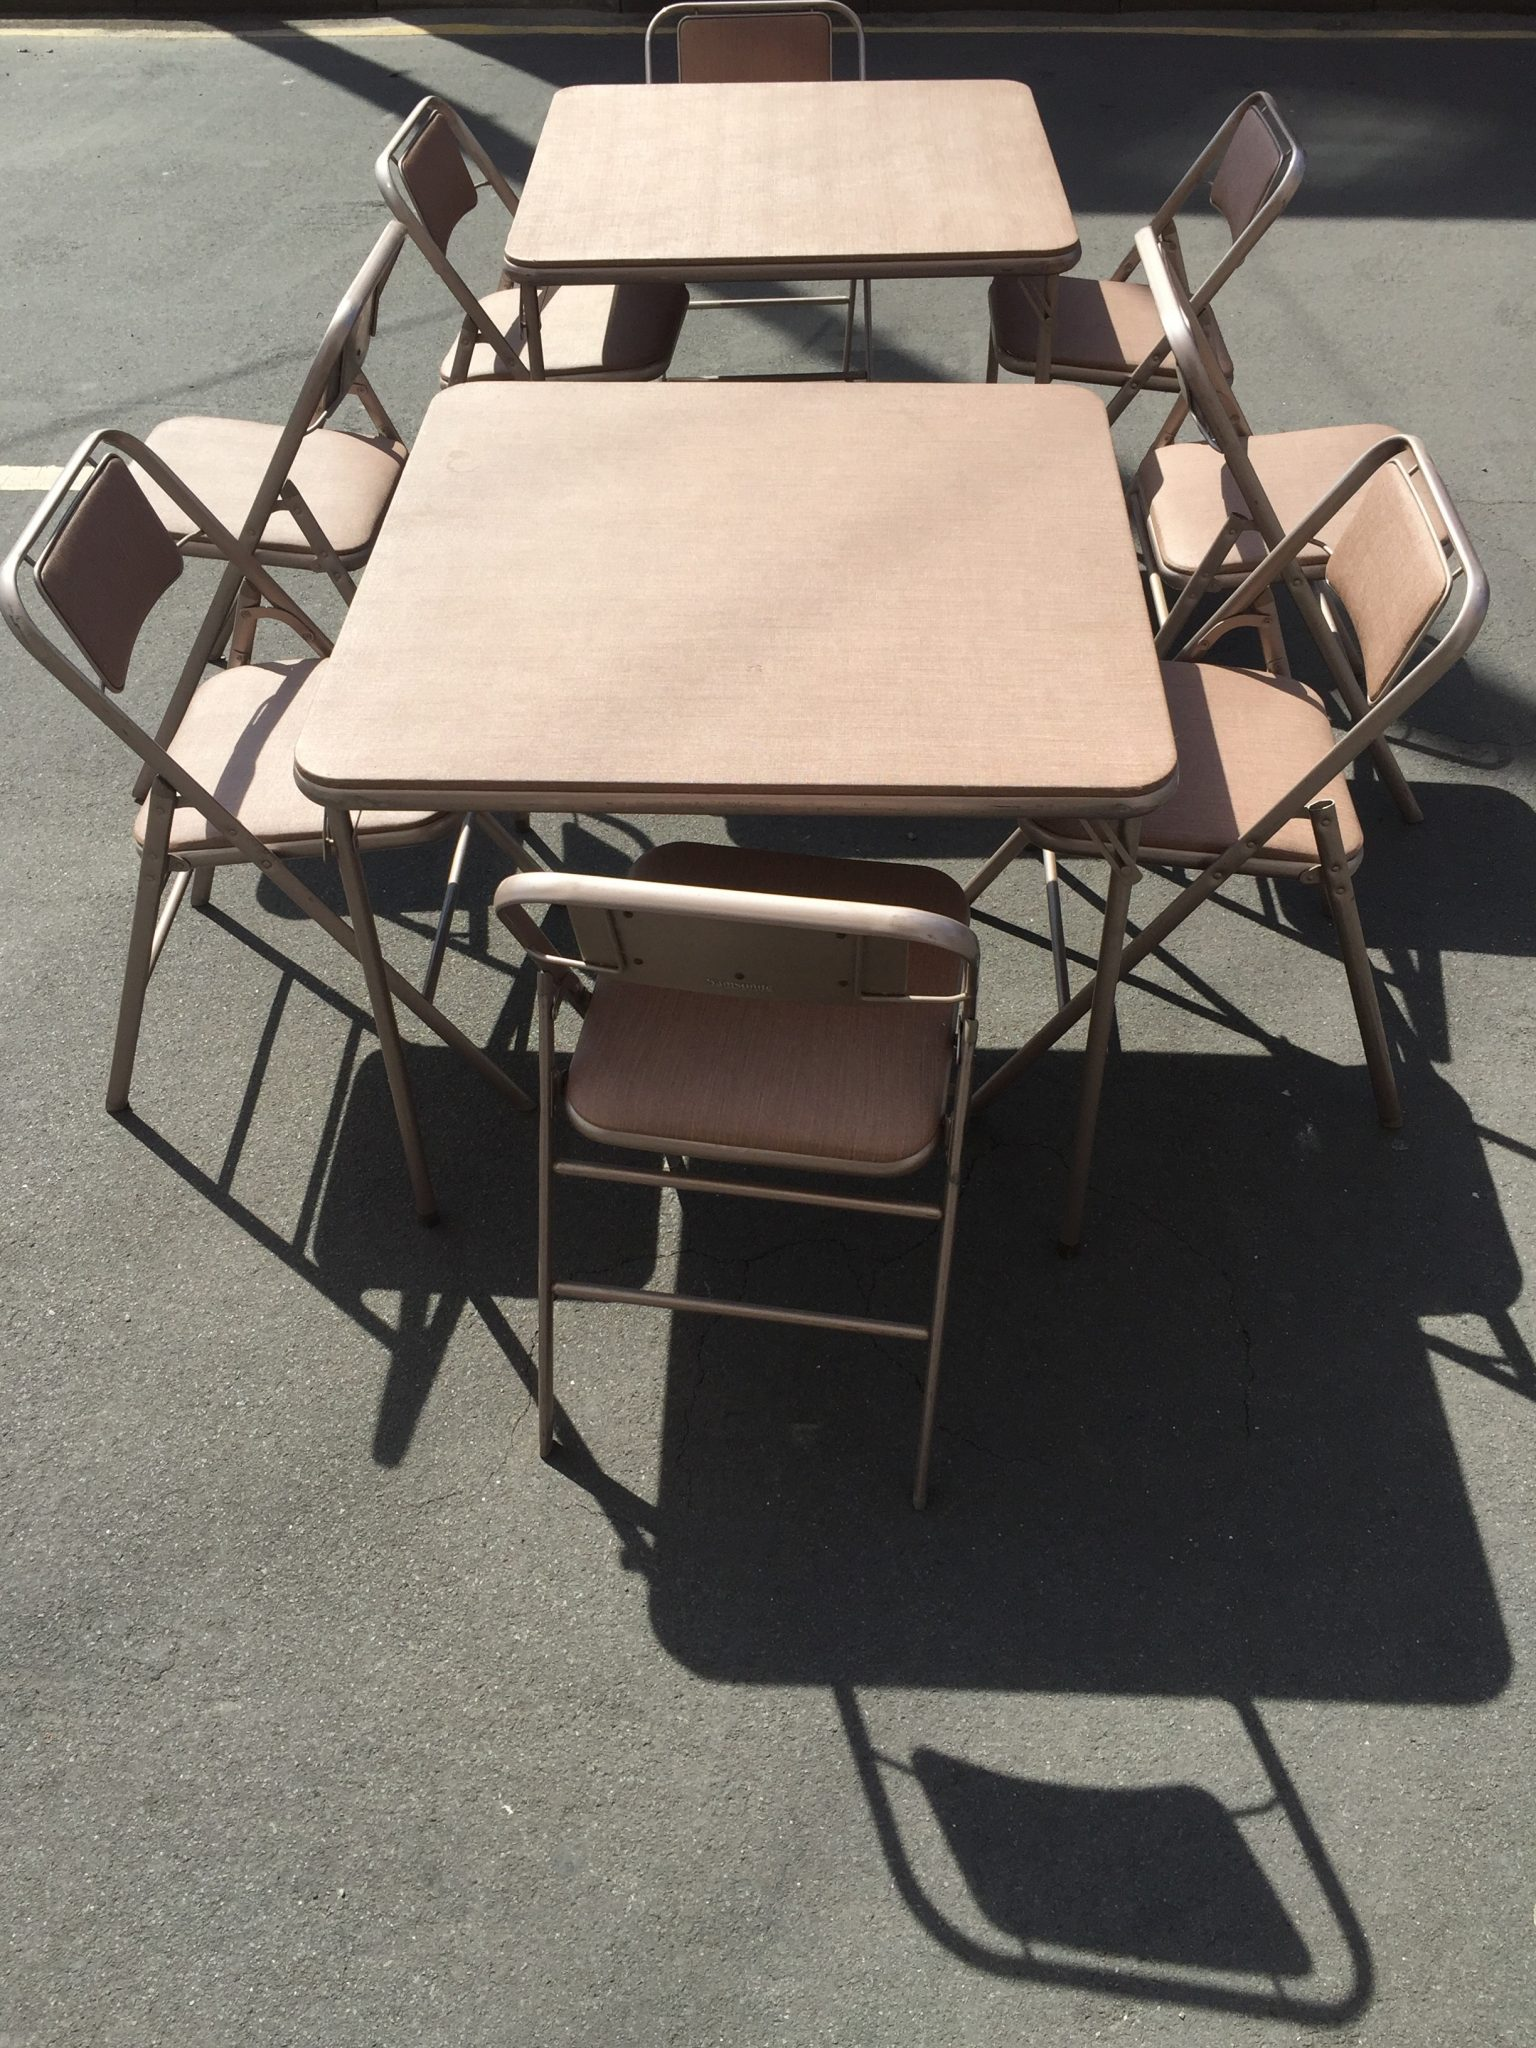 THBSAFC001 Samsonite folding chairs and card tables USA Trevor